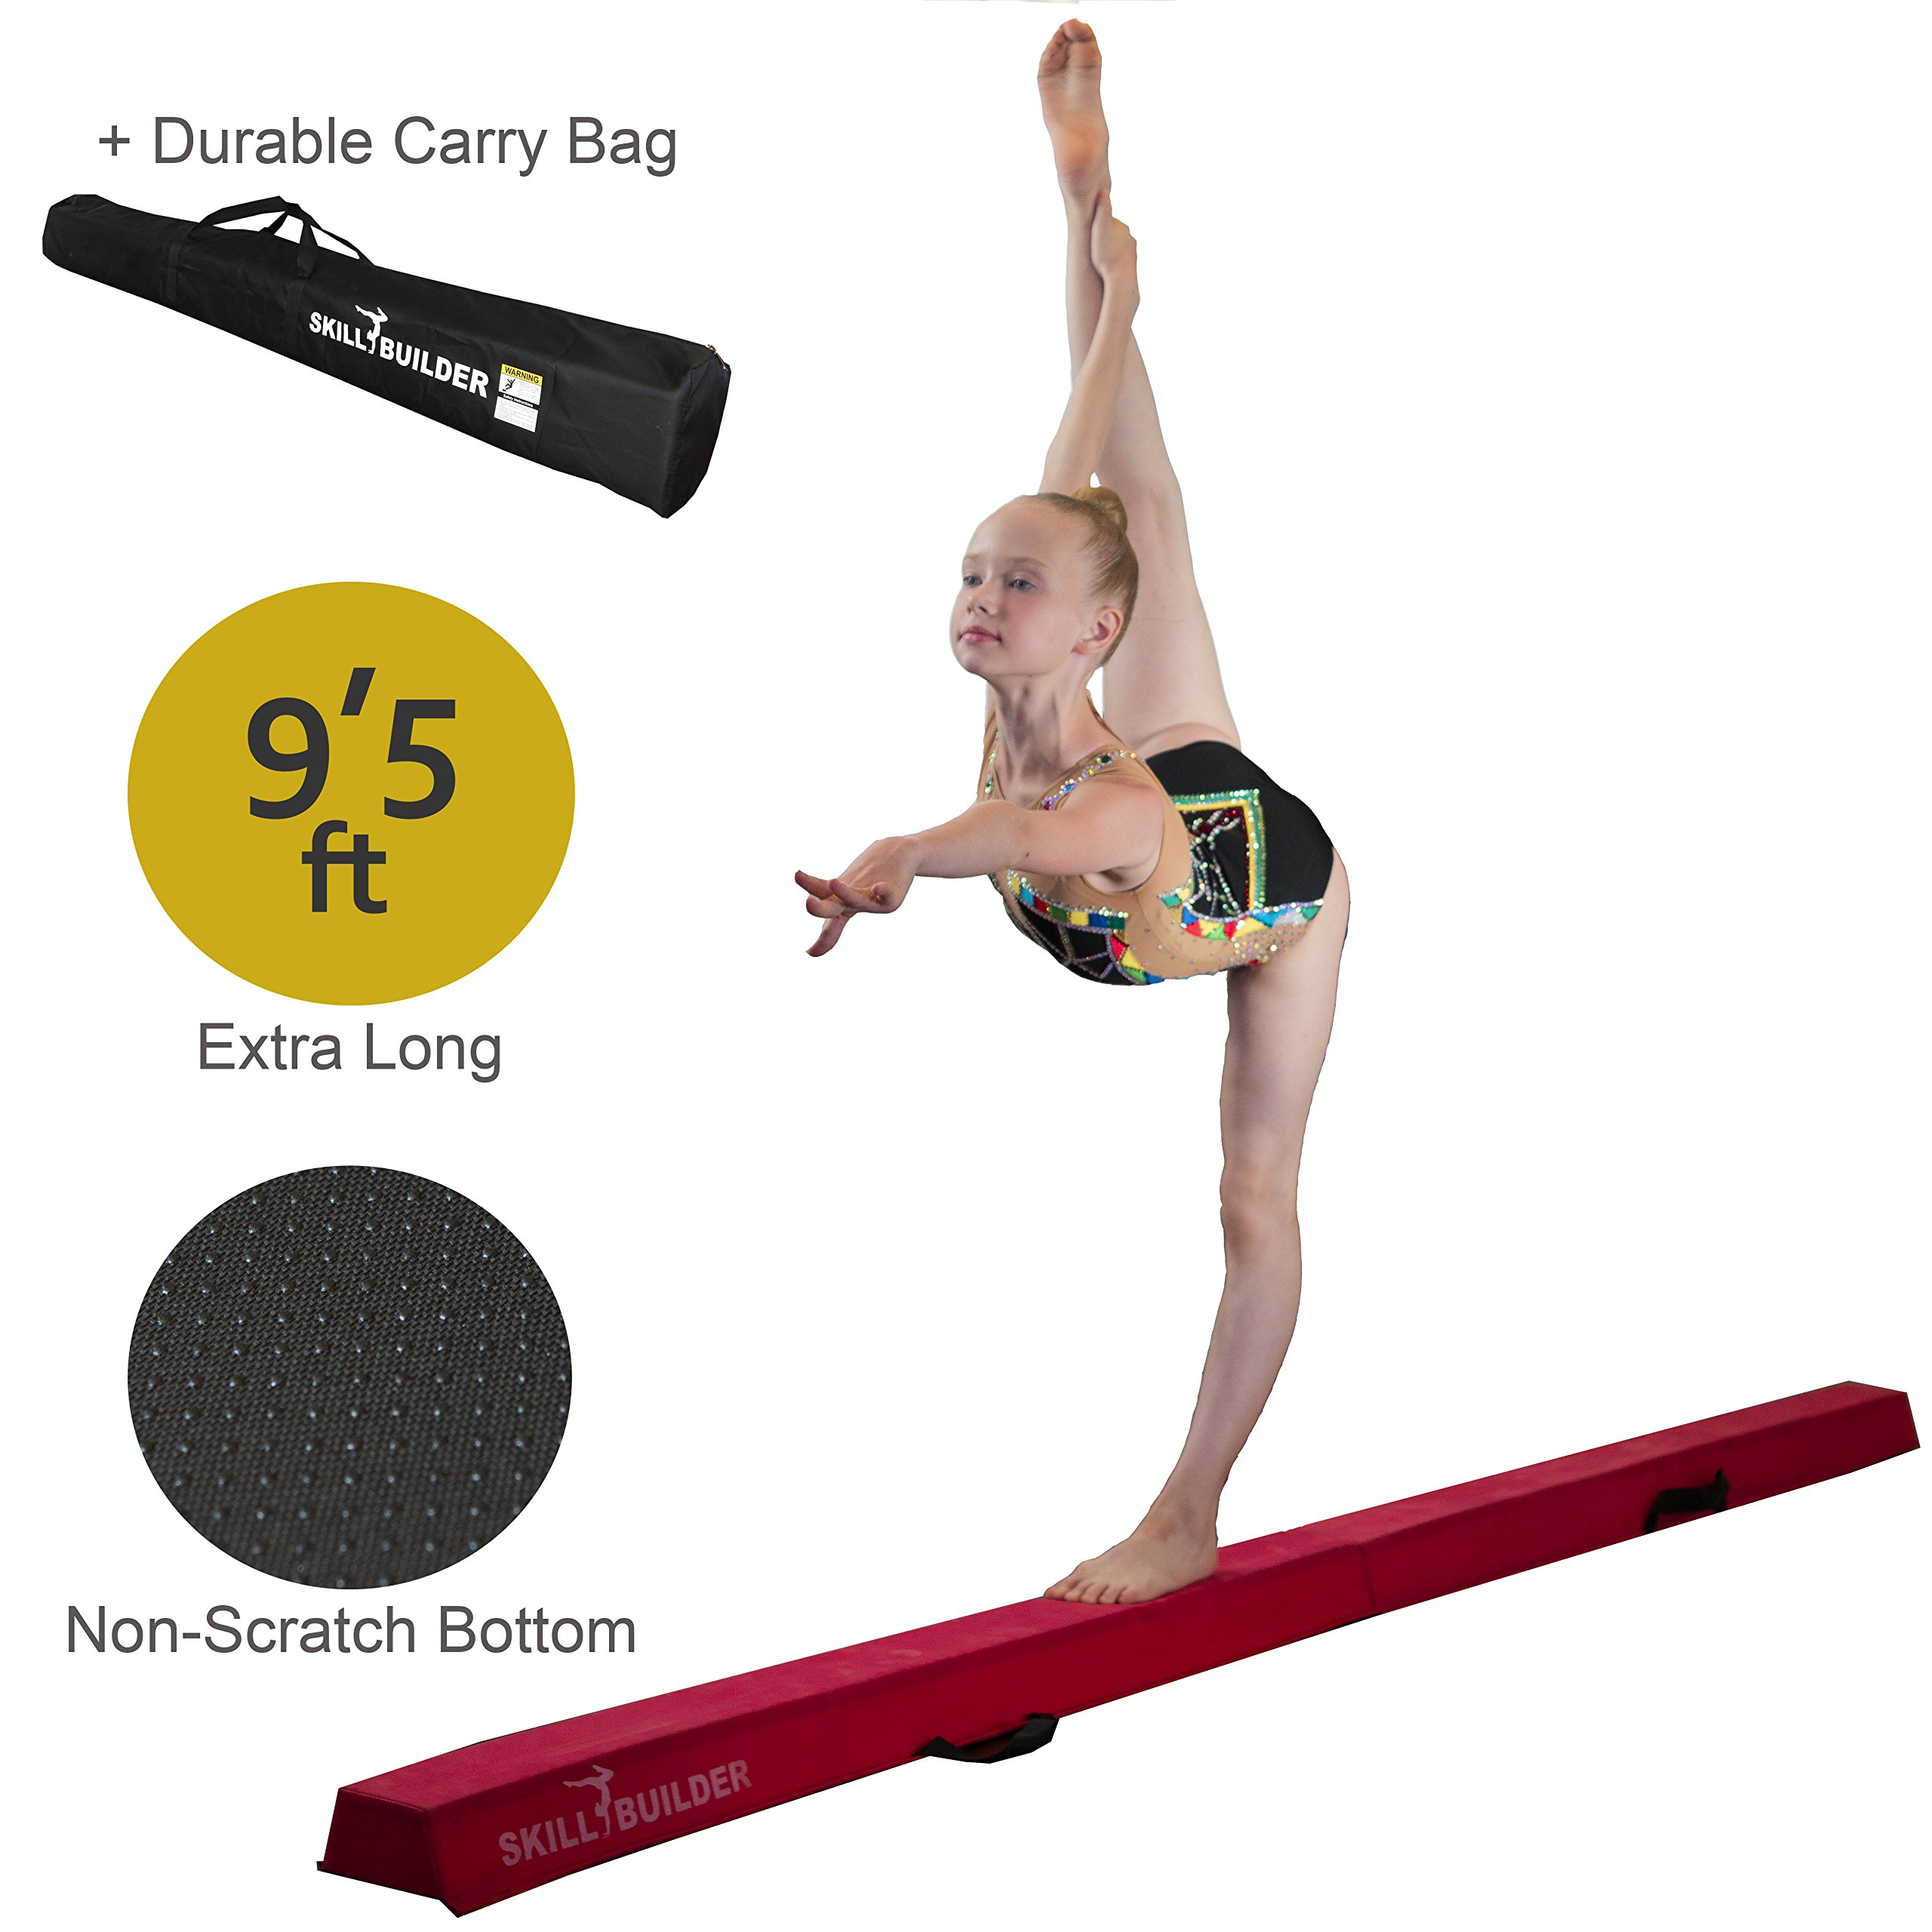 Foldable Gymnastics Beams for Home - 9.5 FT EXTRA LONG High-Density Portable Foam Balance Beam for Toddlers to Teens / Kids Gymnastics Equipment / Lightweight Red Practice Beam / Floor Beam